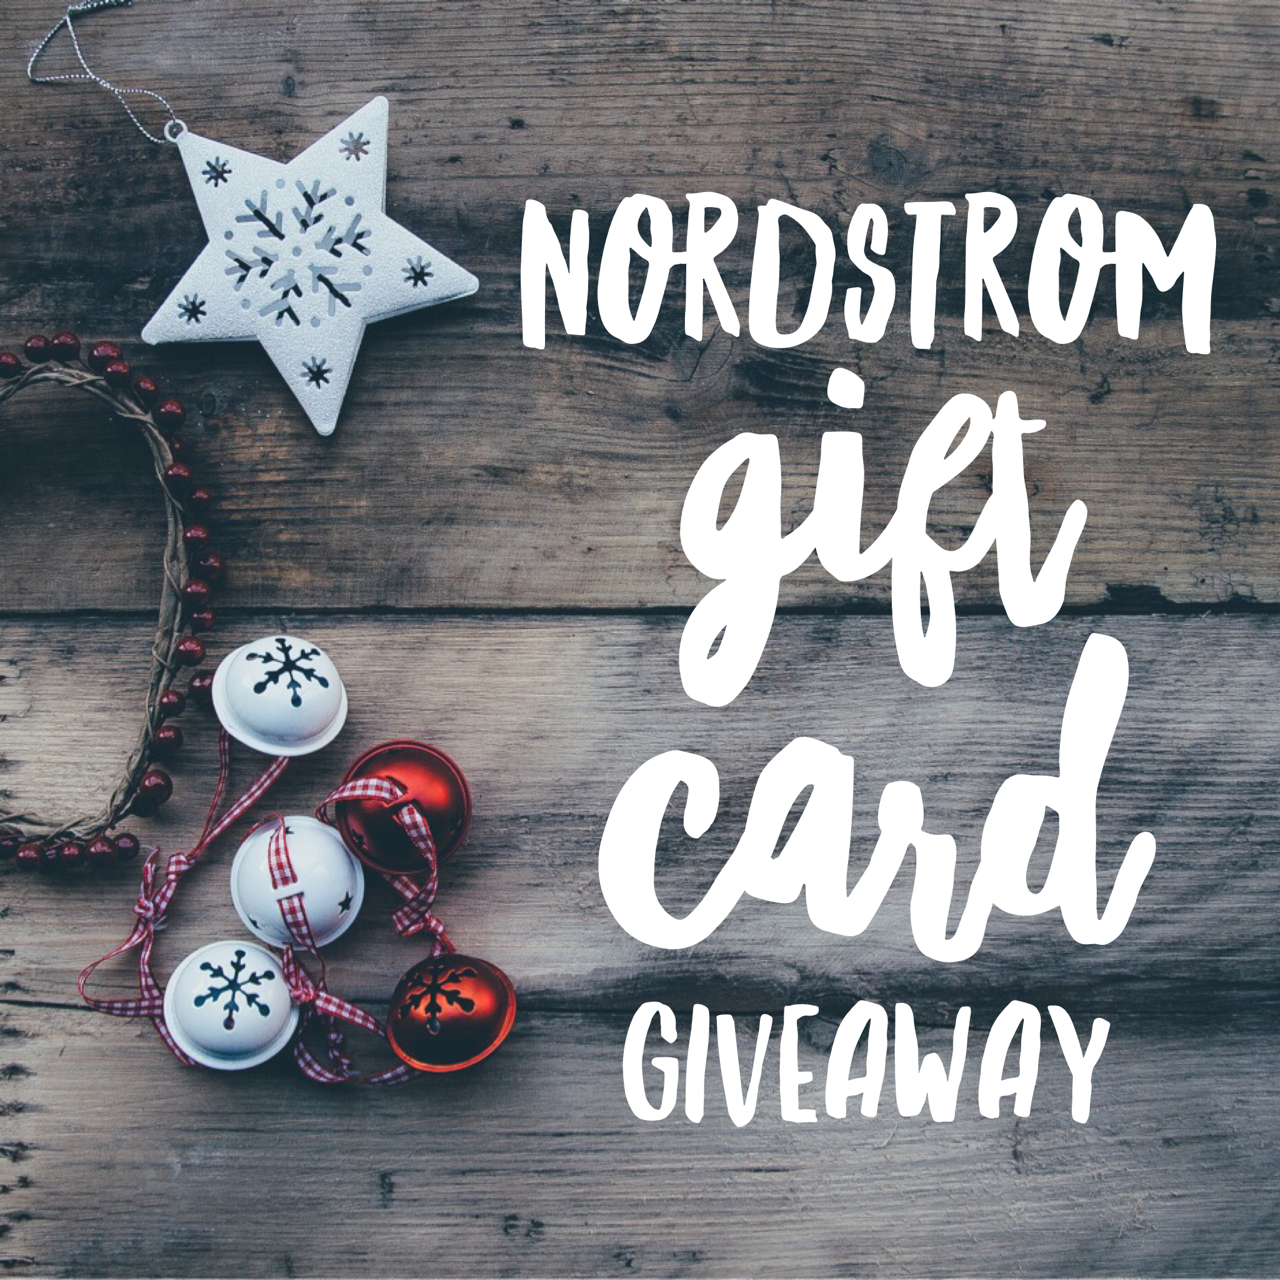 Nordstrom Gift Card Giveaway!